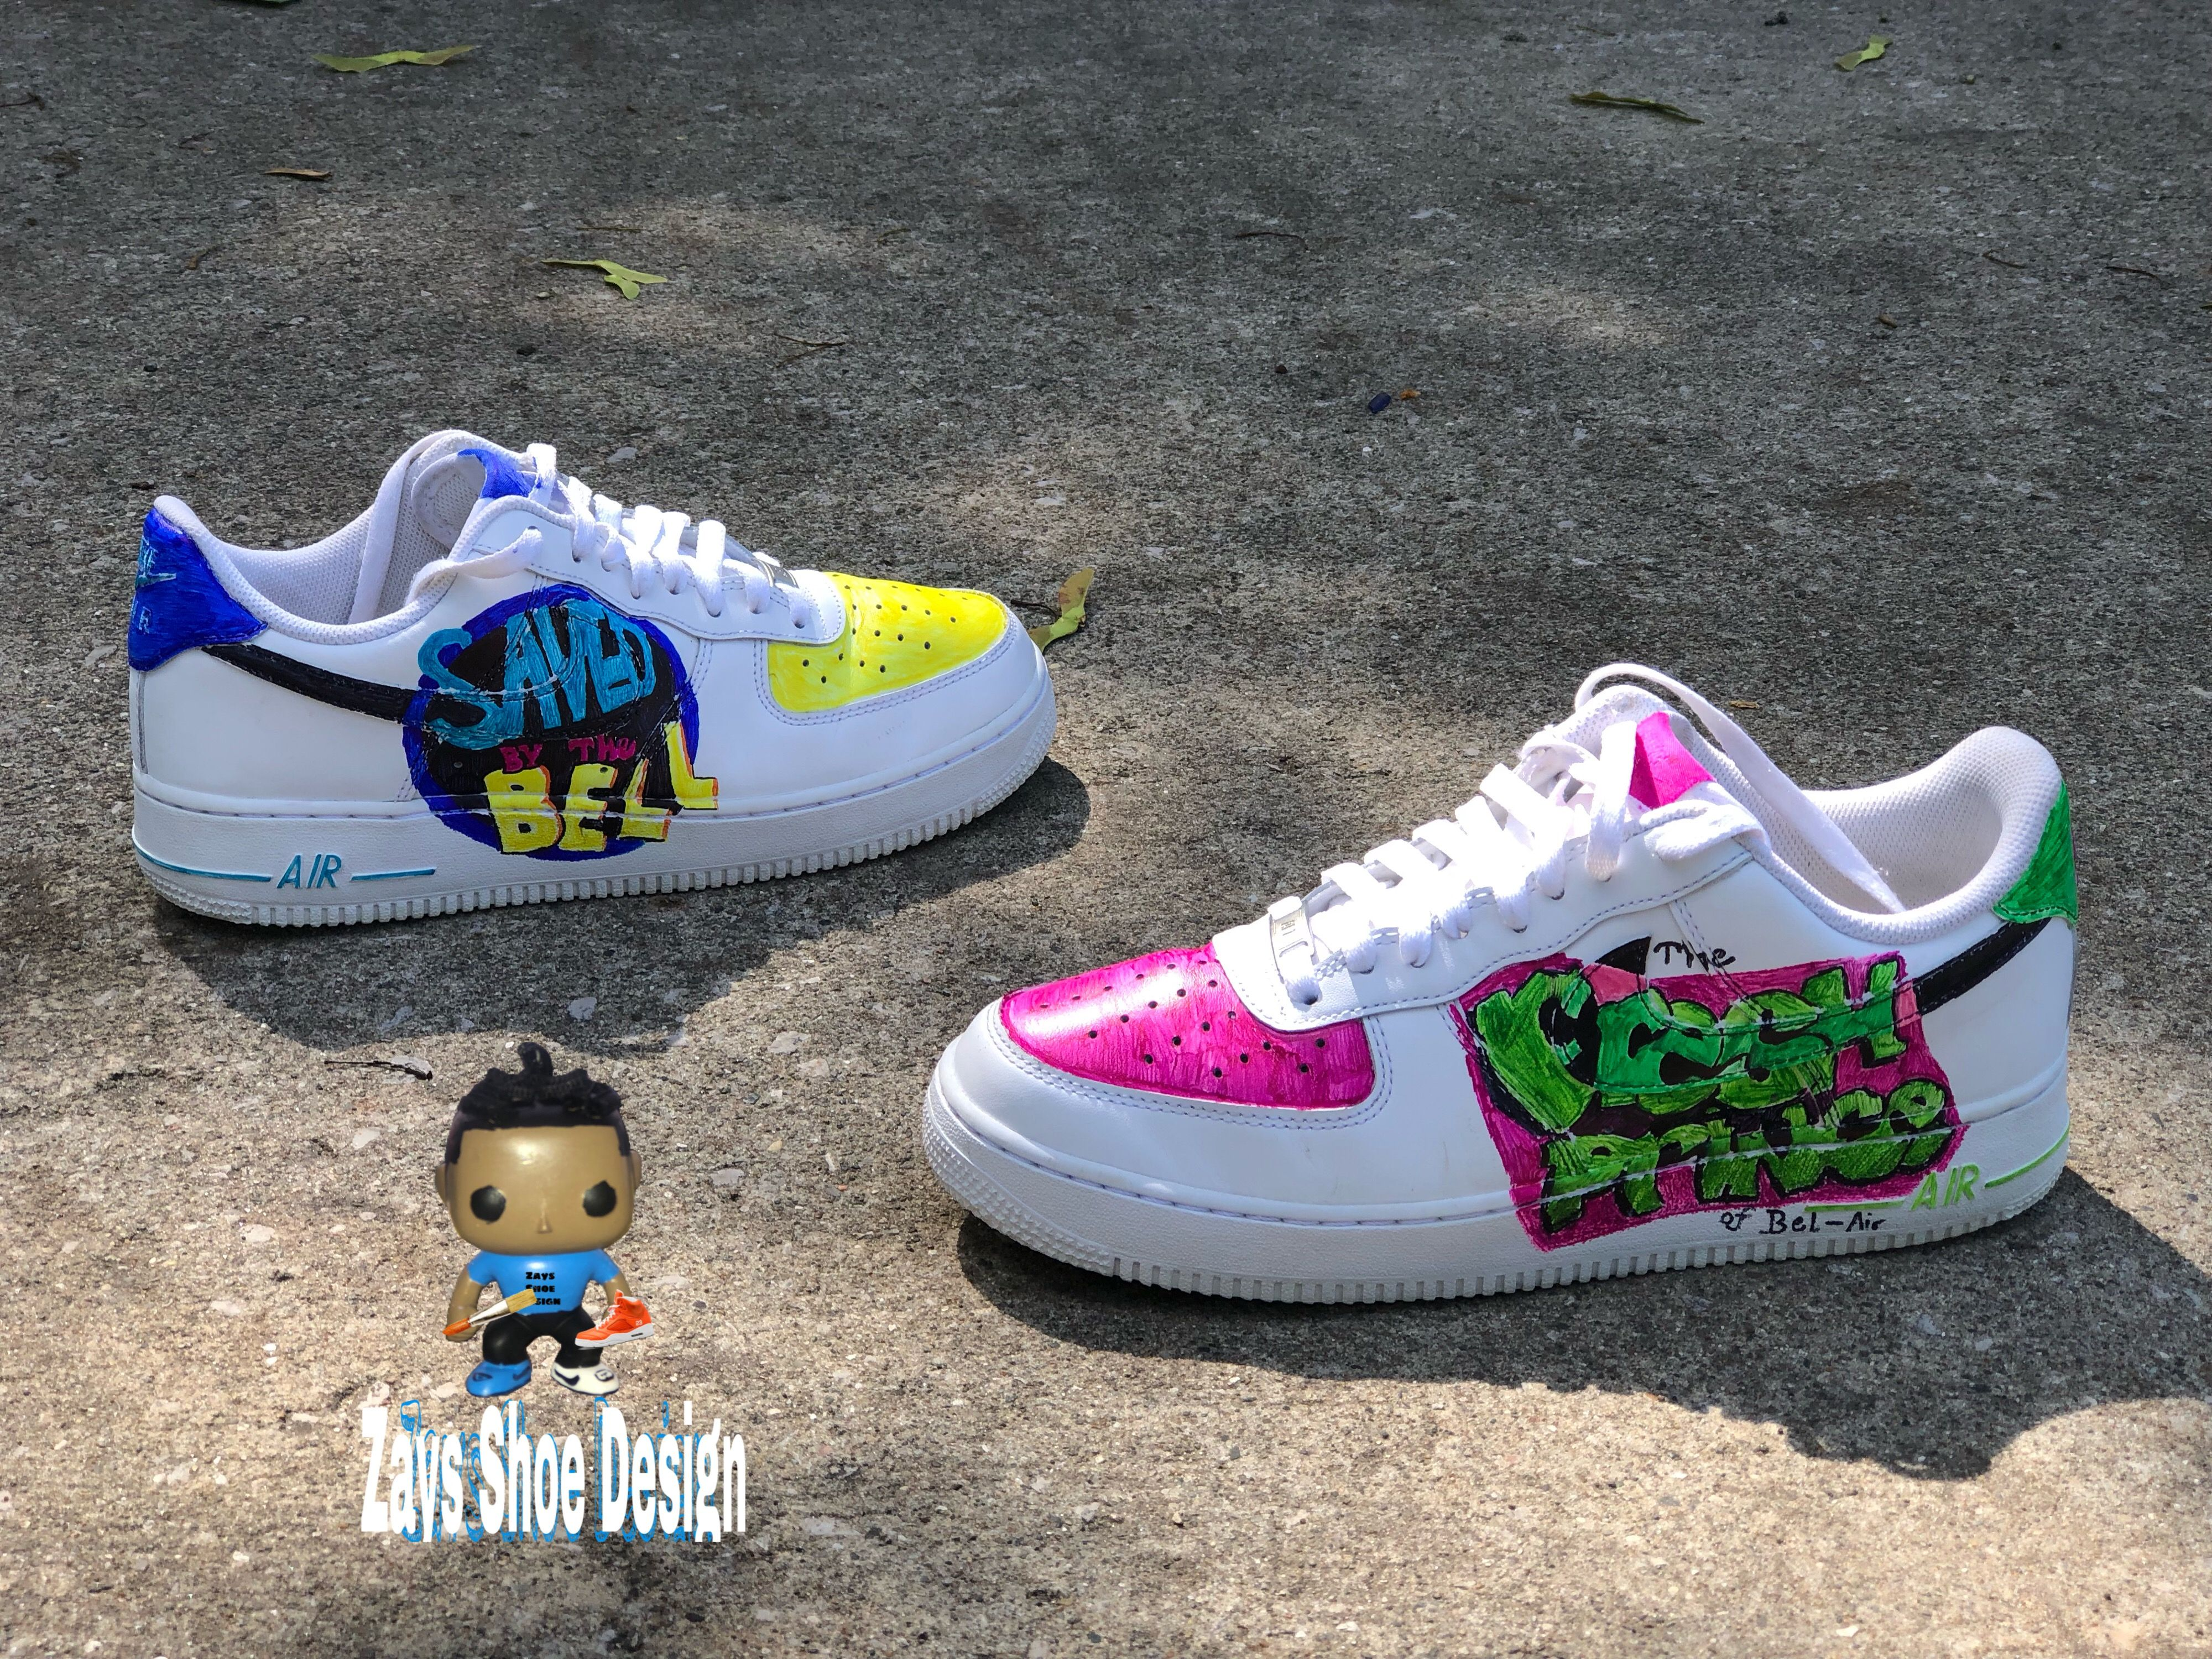 palanca aire Complejo  Nike Air Force 1s | Nike, Nike air force 1s, Custom shoes